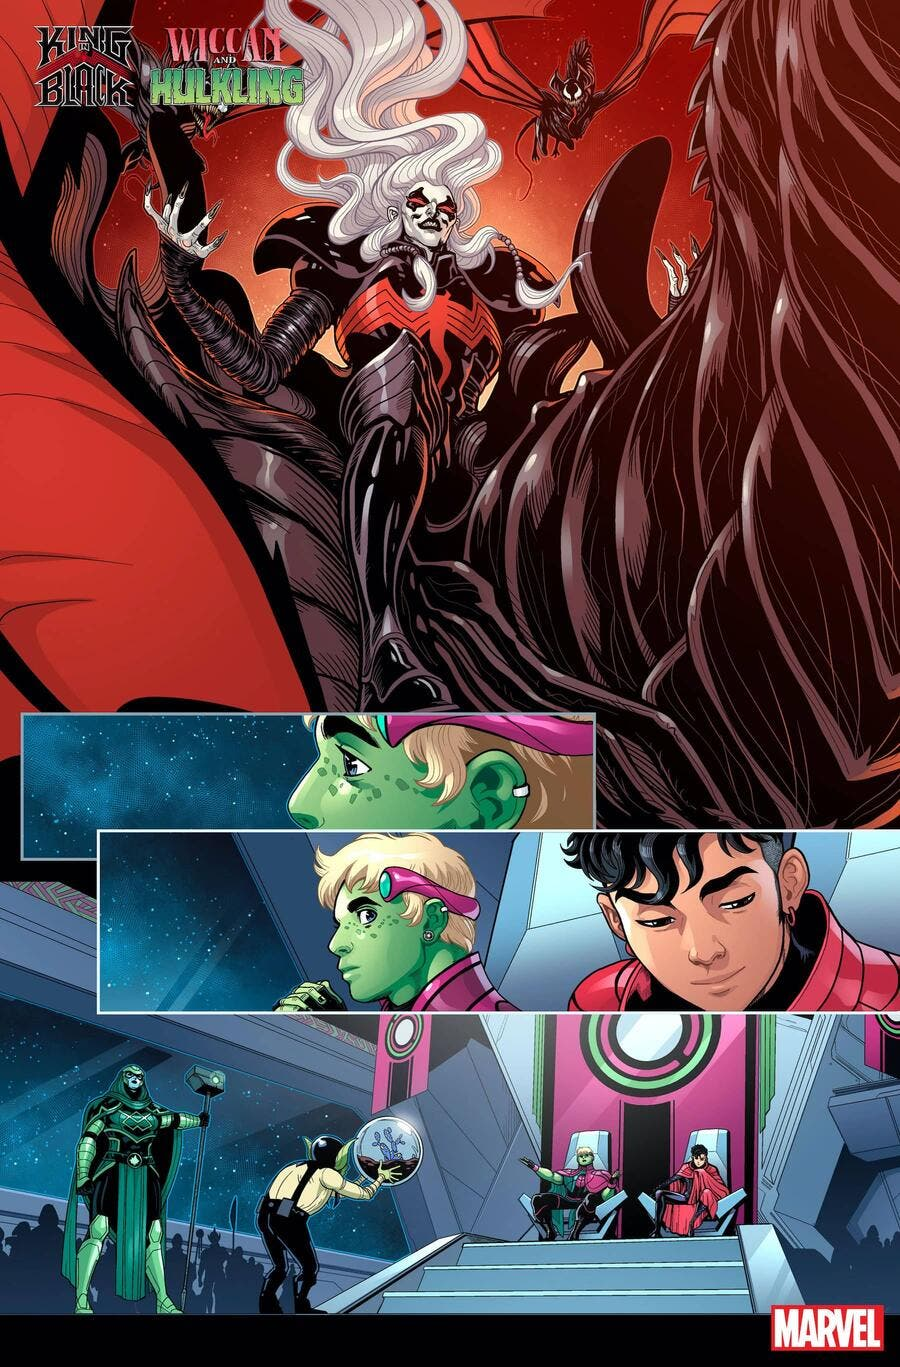 King in Black: Wiccan and Hulkling